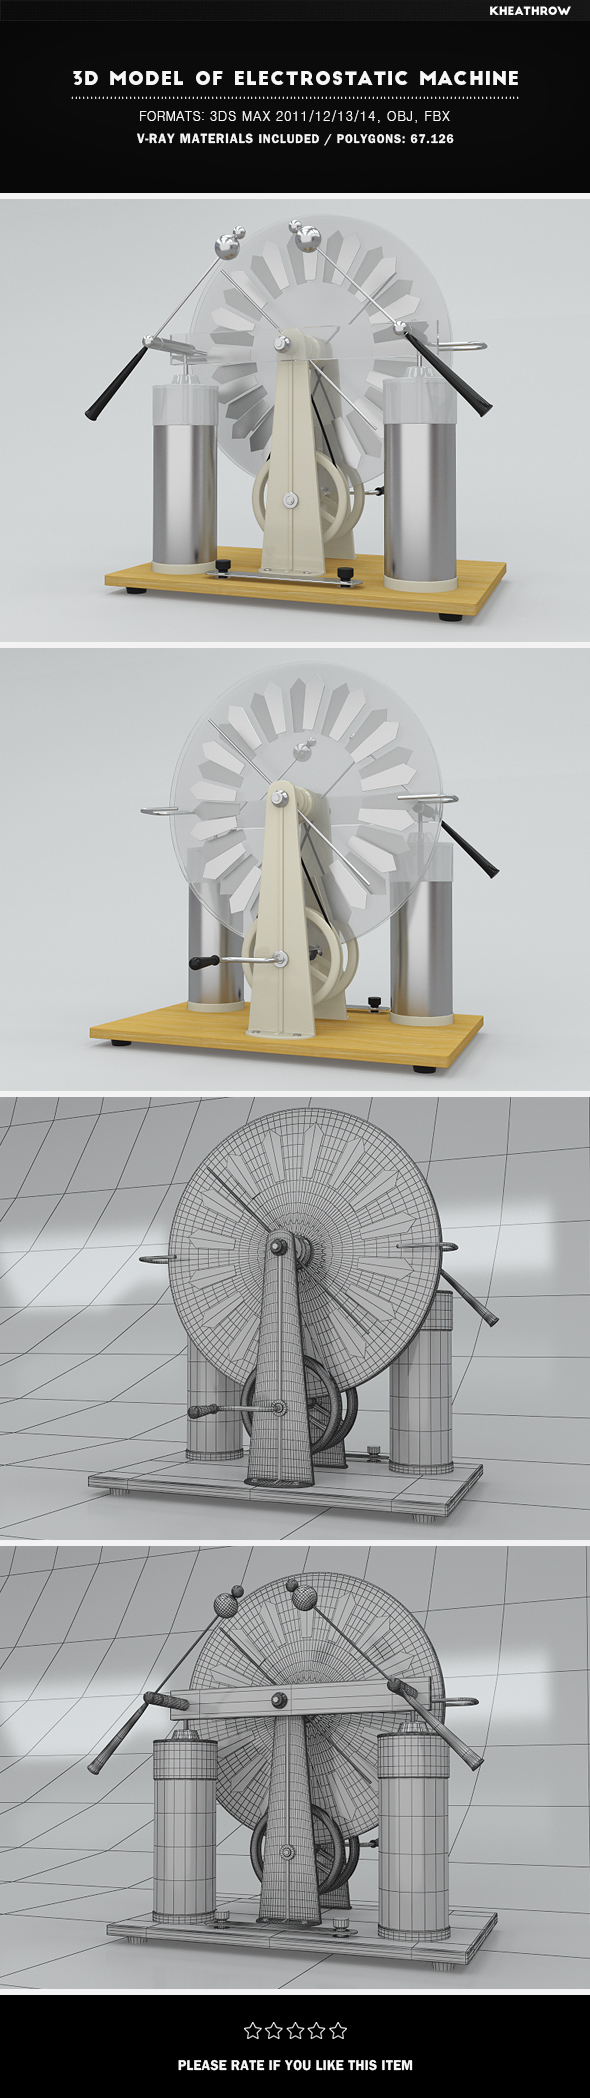 3d Model of Electrostatic Machine - 3DOcean Item for Sale